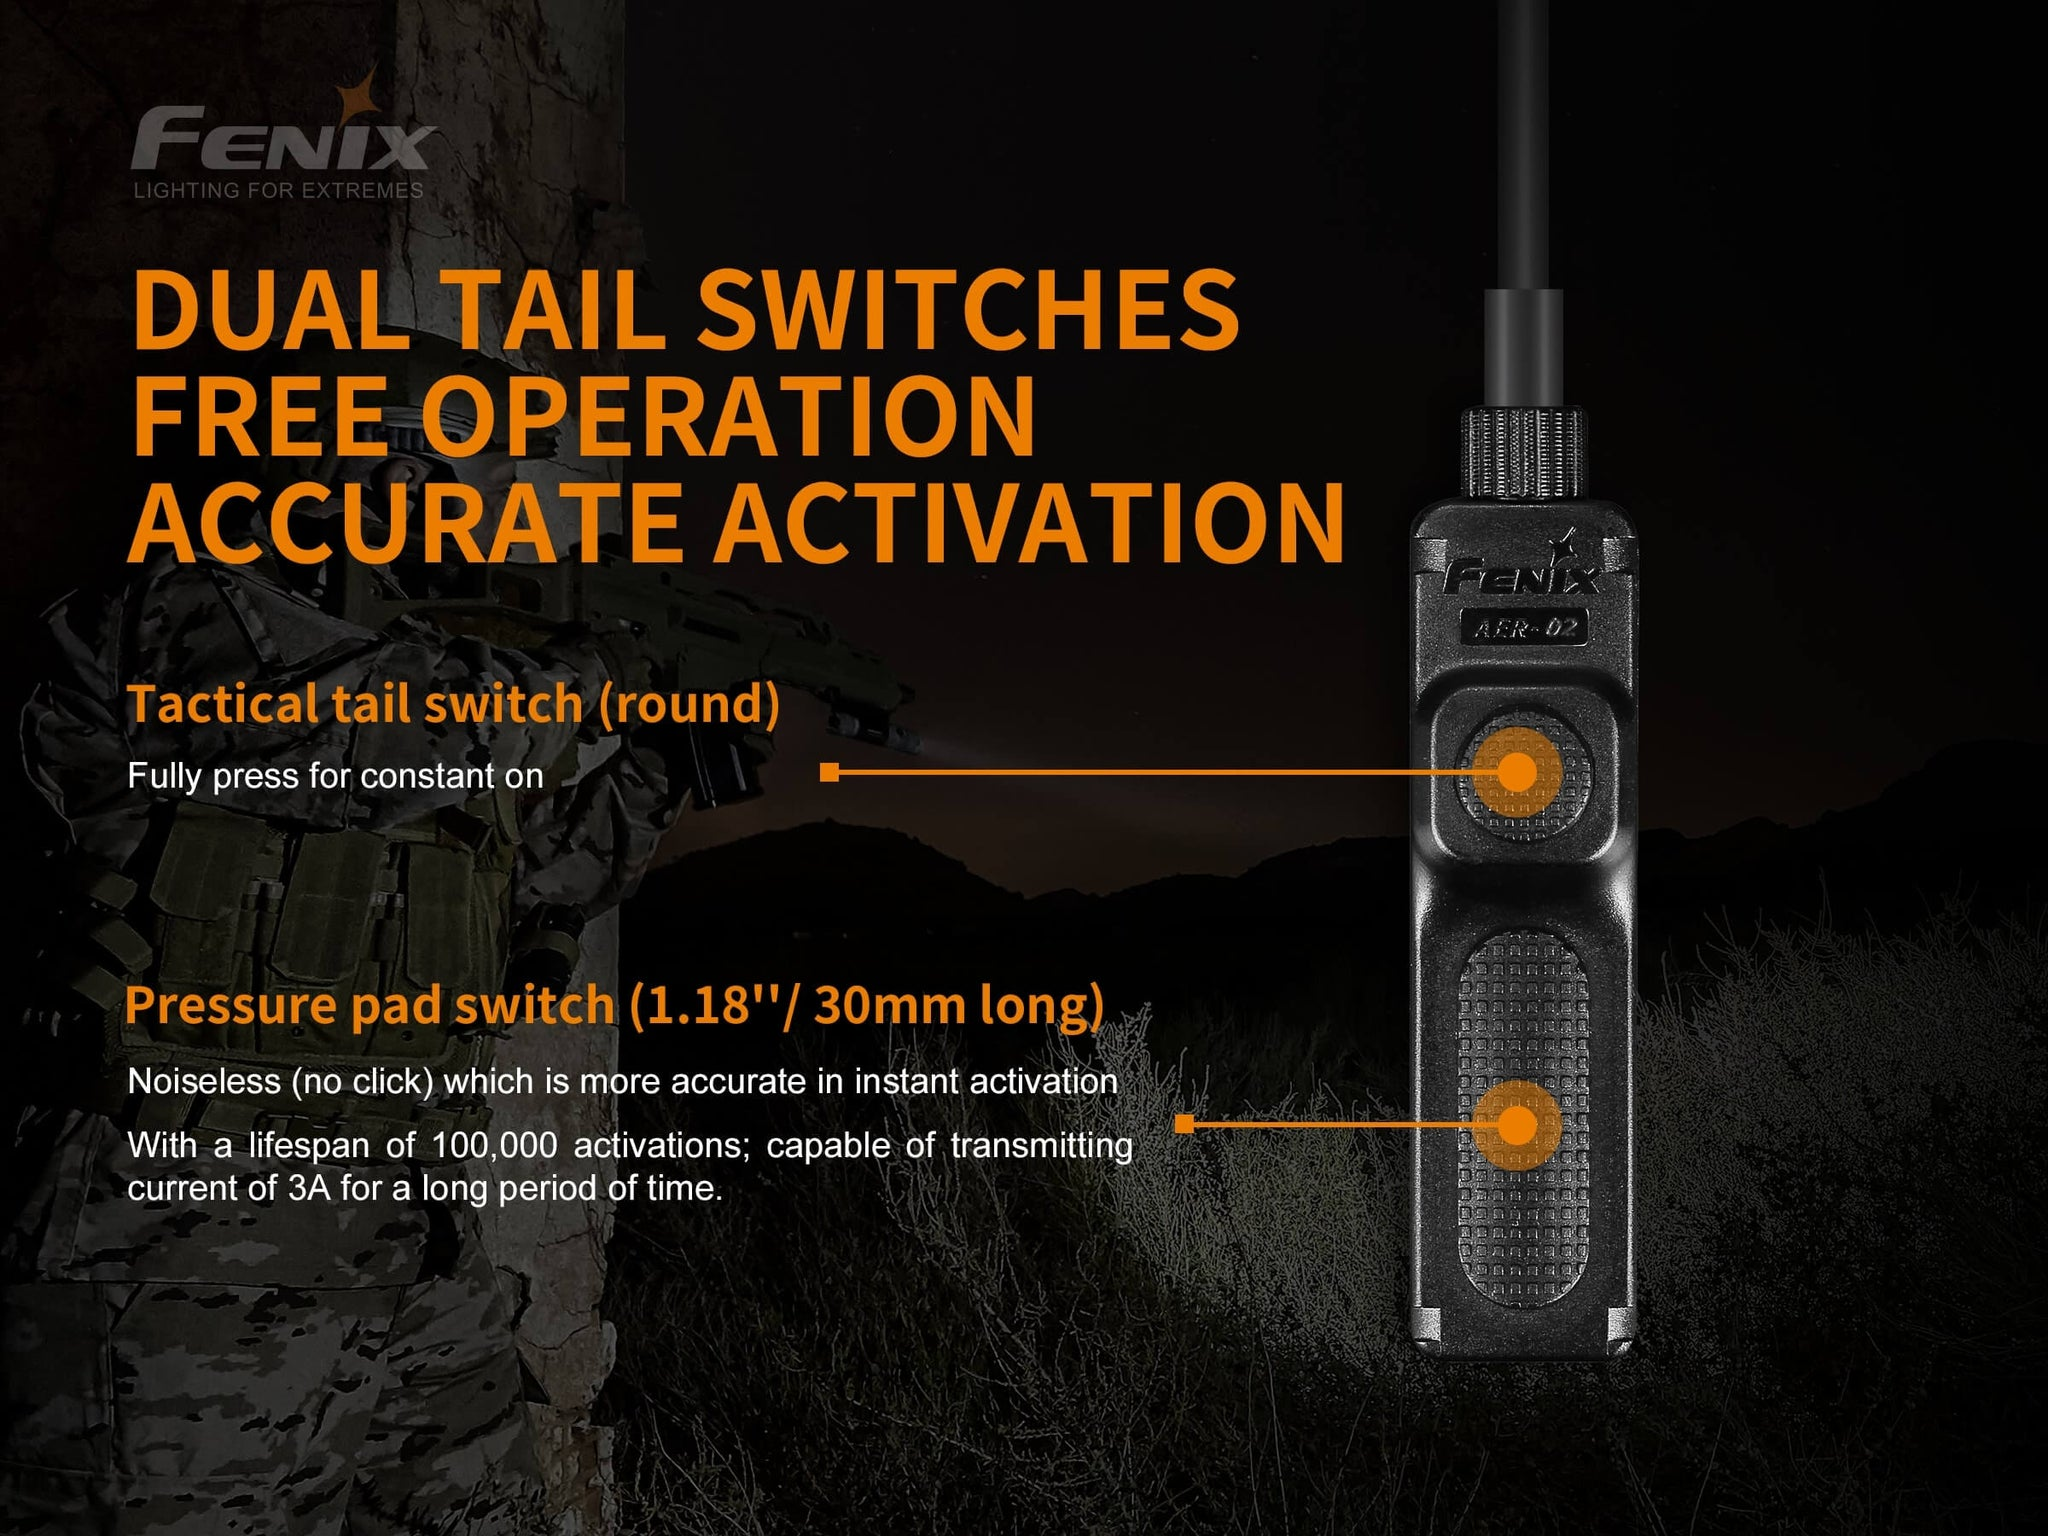 Fenix AER 02 V2 Remote Pressure Switch, Fenix Tactical Torch Accessory, Remote pressure switch for quick operation to mounted torches